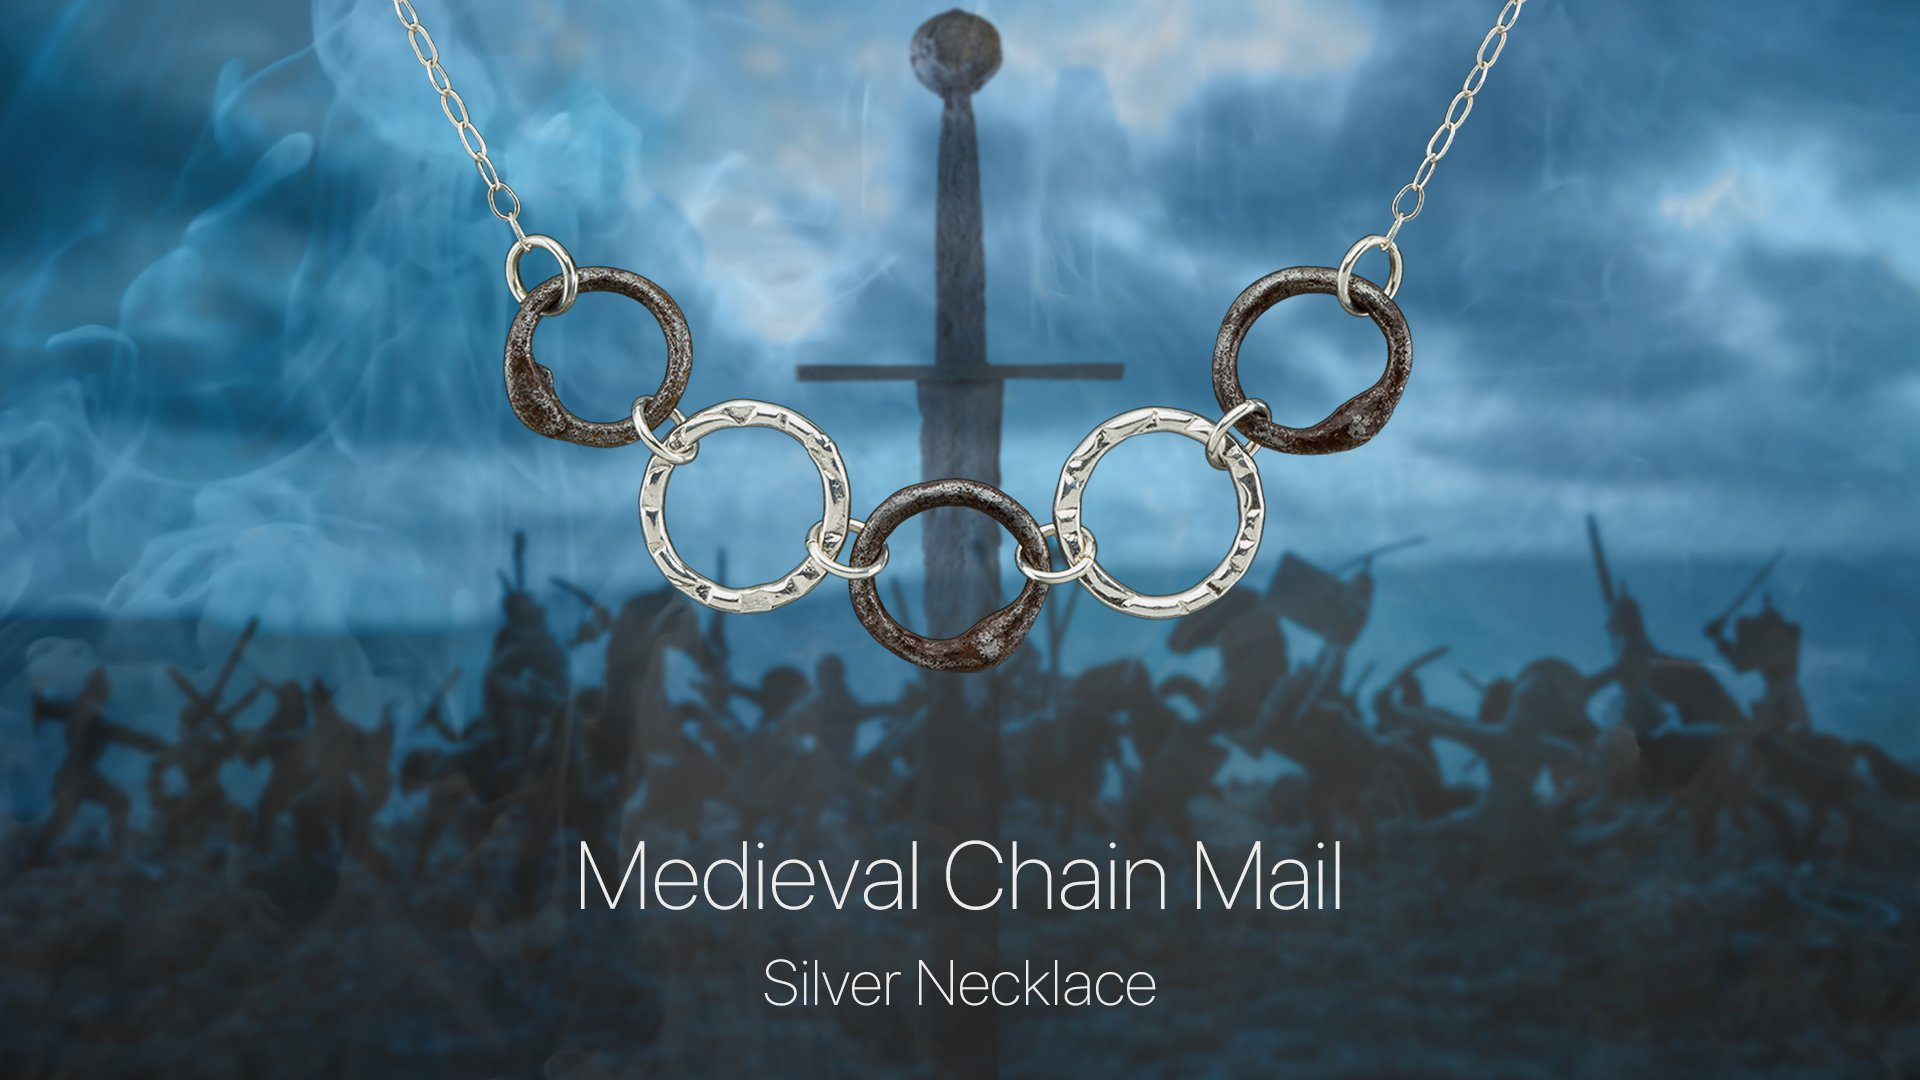 Medieval Chain Mail Silver Necklace